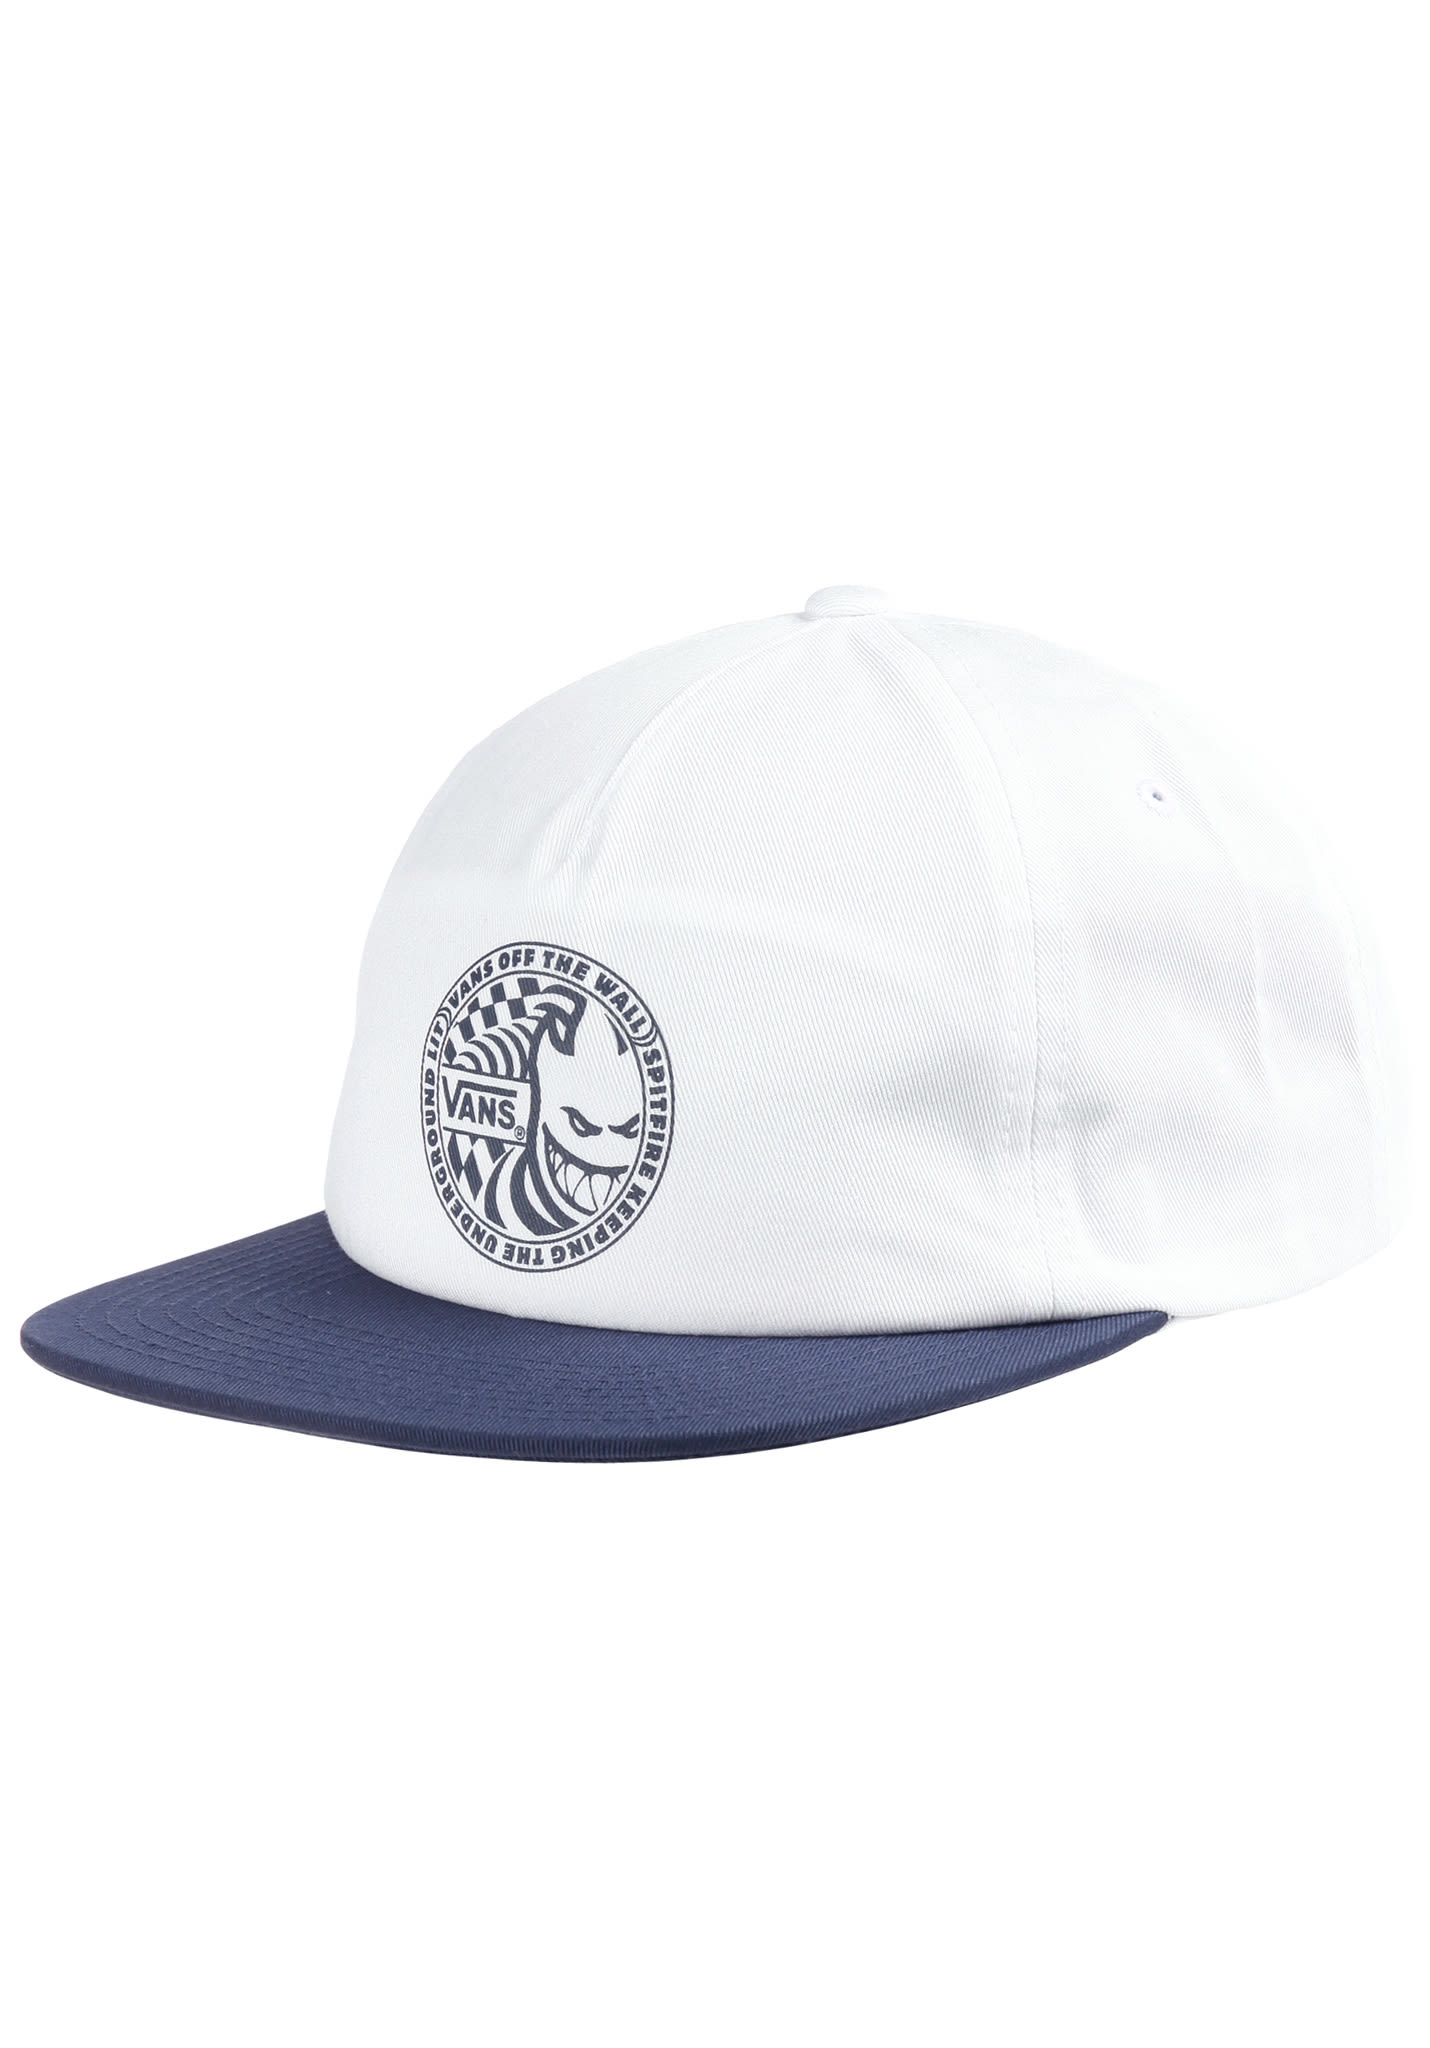 b73328c863 Vans X Spitfire Shallow Unstructured - Snapback Cap for Men - White ...